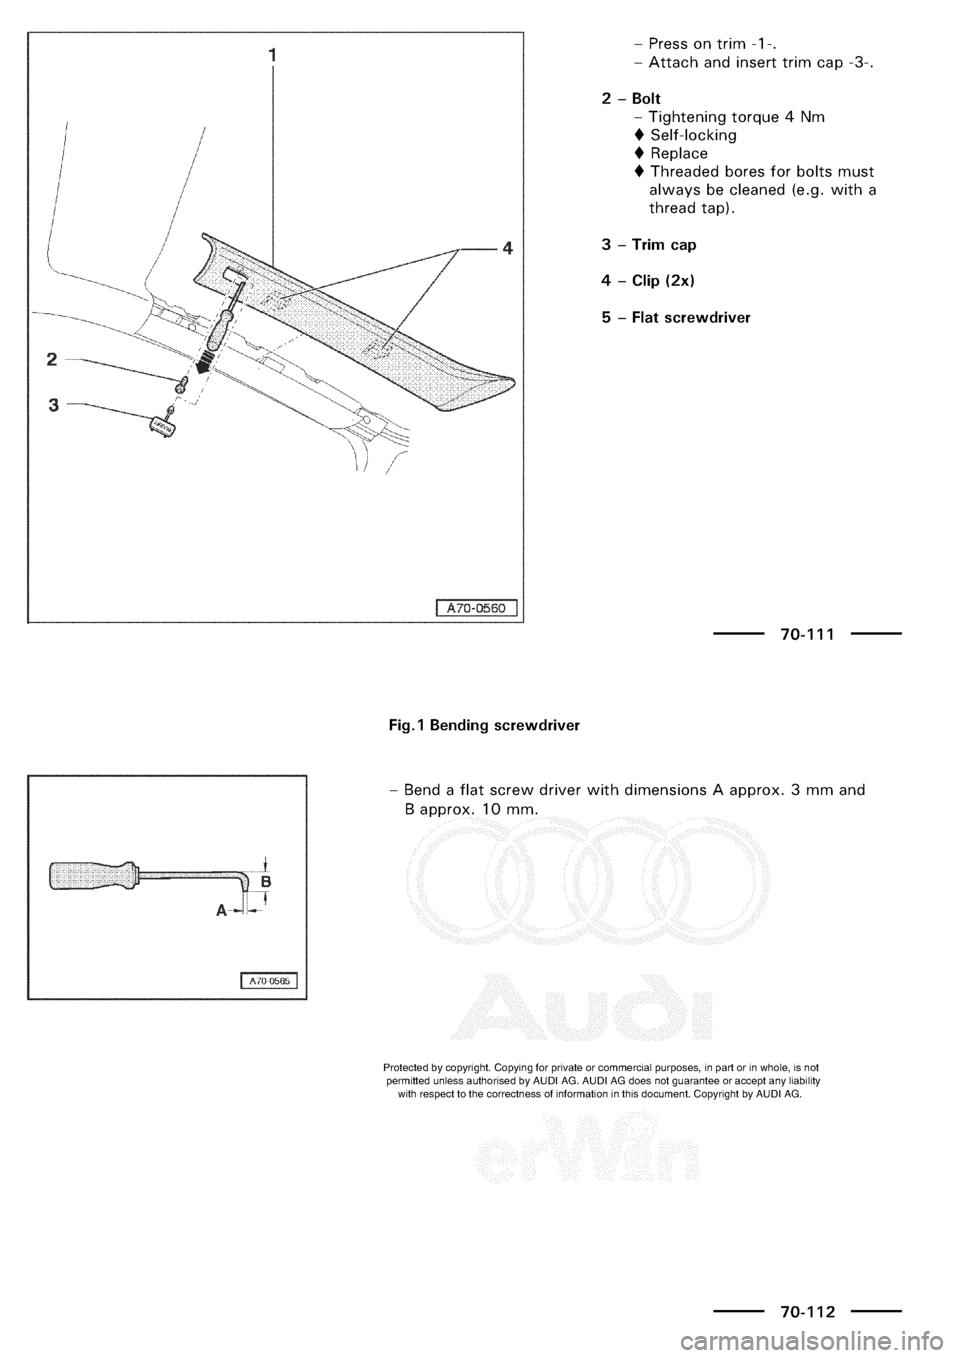 AUDI A3 1997 8L / 1.G General Body Assembly Interior Workshop Manual